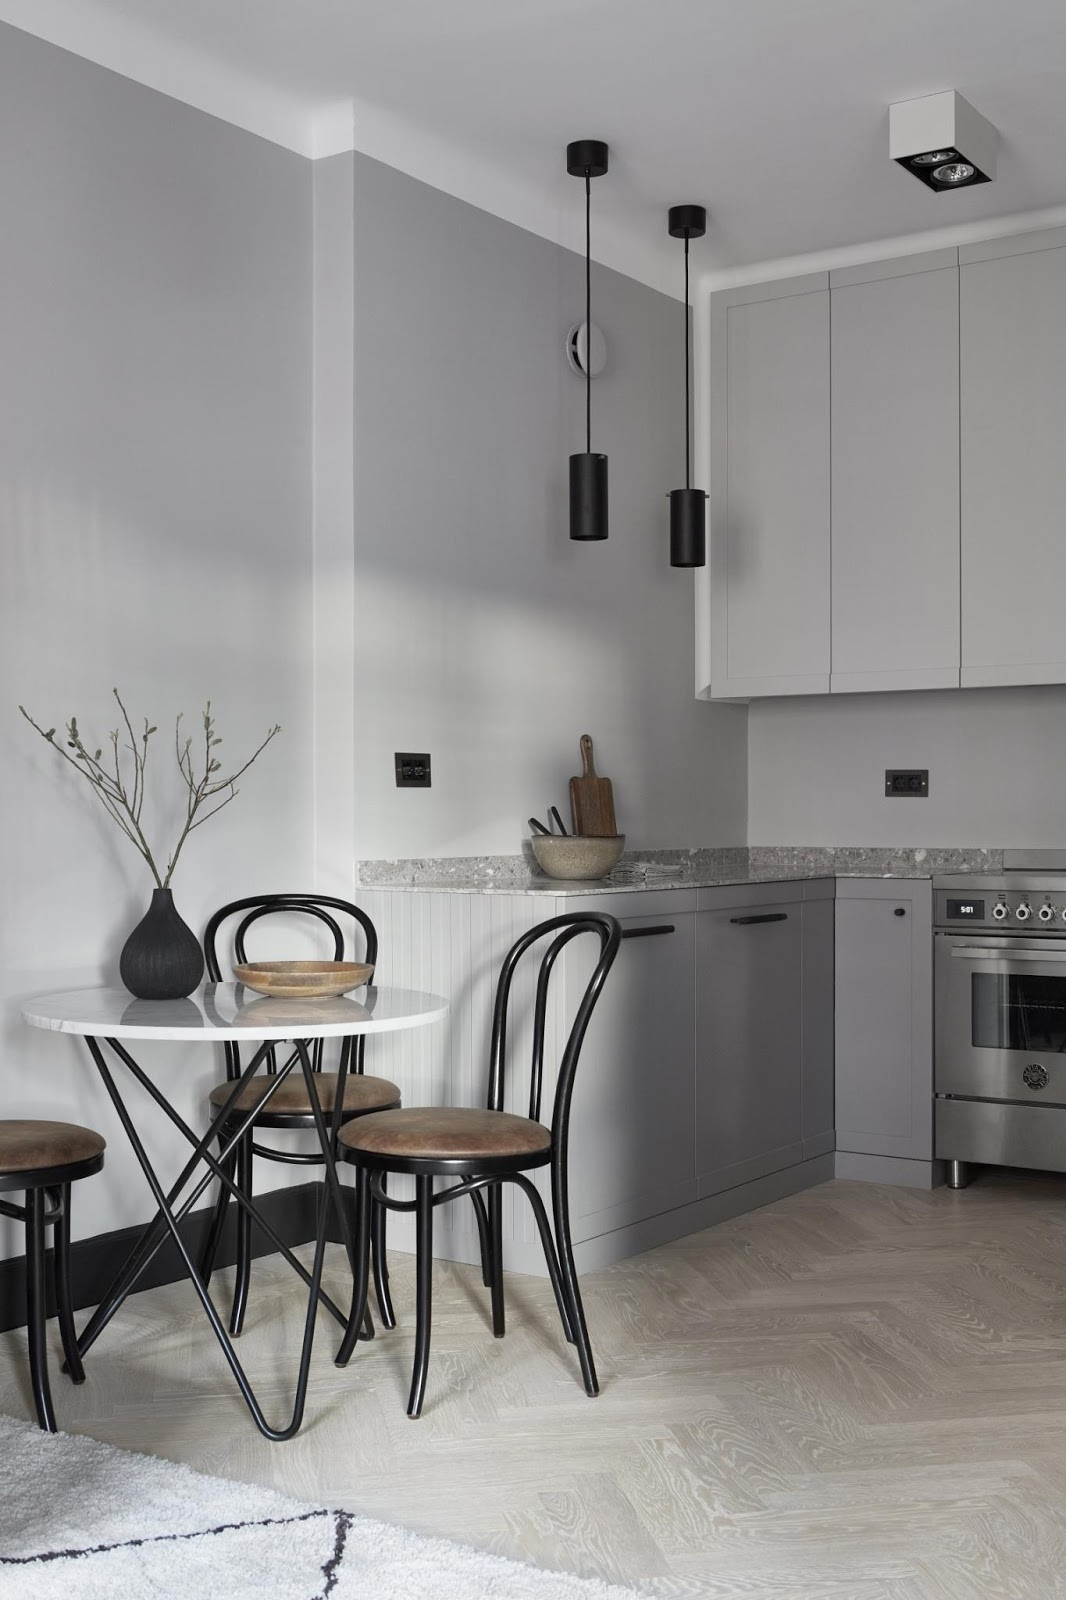 This Kitchen In A Swedish Flat Has Been Finished In Multiple Shades Of  Grey. The Worktop, Upper Cabinets, Lowers And Steel Appliances Give  Multifaceted ...